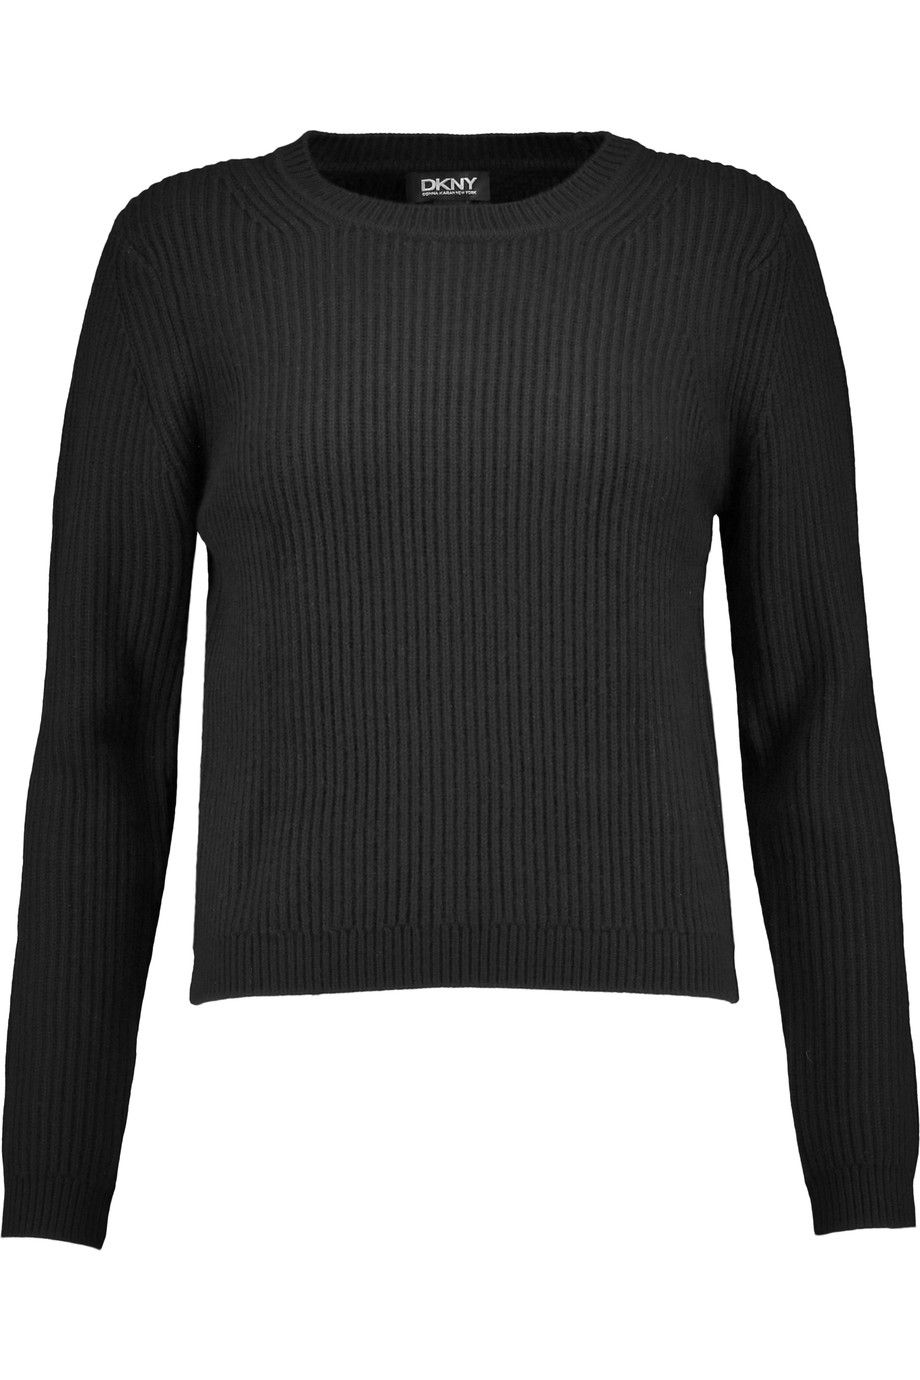 DKNY Cropped ribbed-knit sweater. #dkny #cloth #sweater